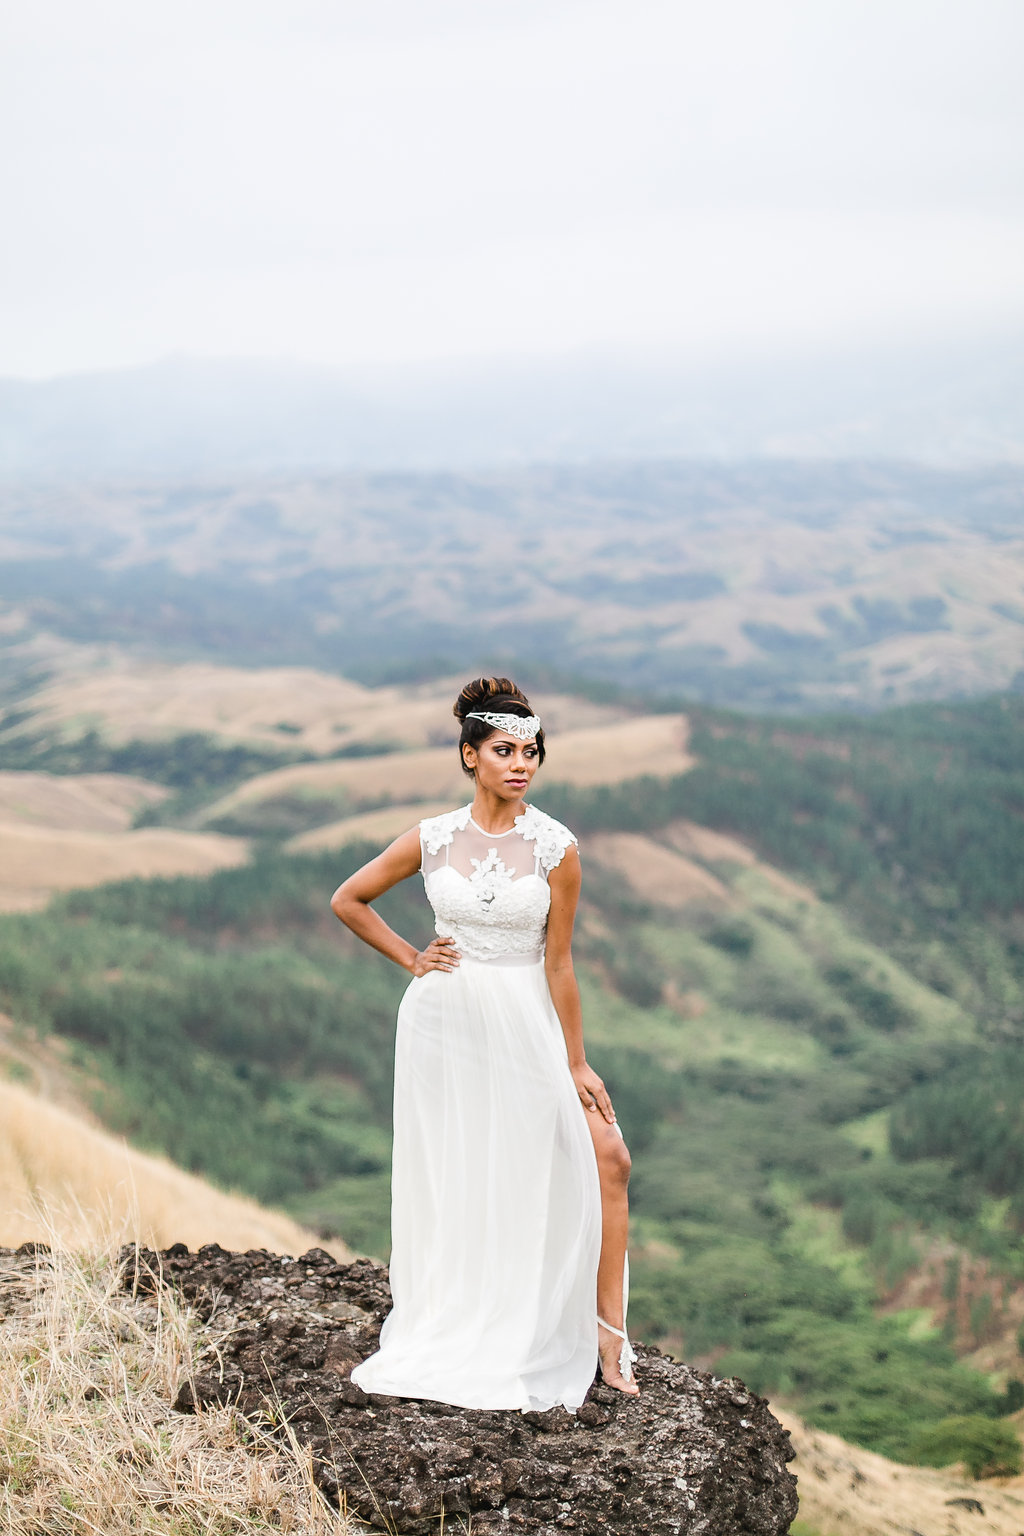 gold coast bridal wear, boho wedding dresses, gold coast wedding dresses, bohemian wedding dress, gold coast tipis